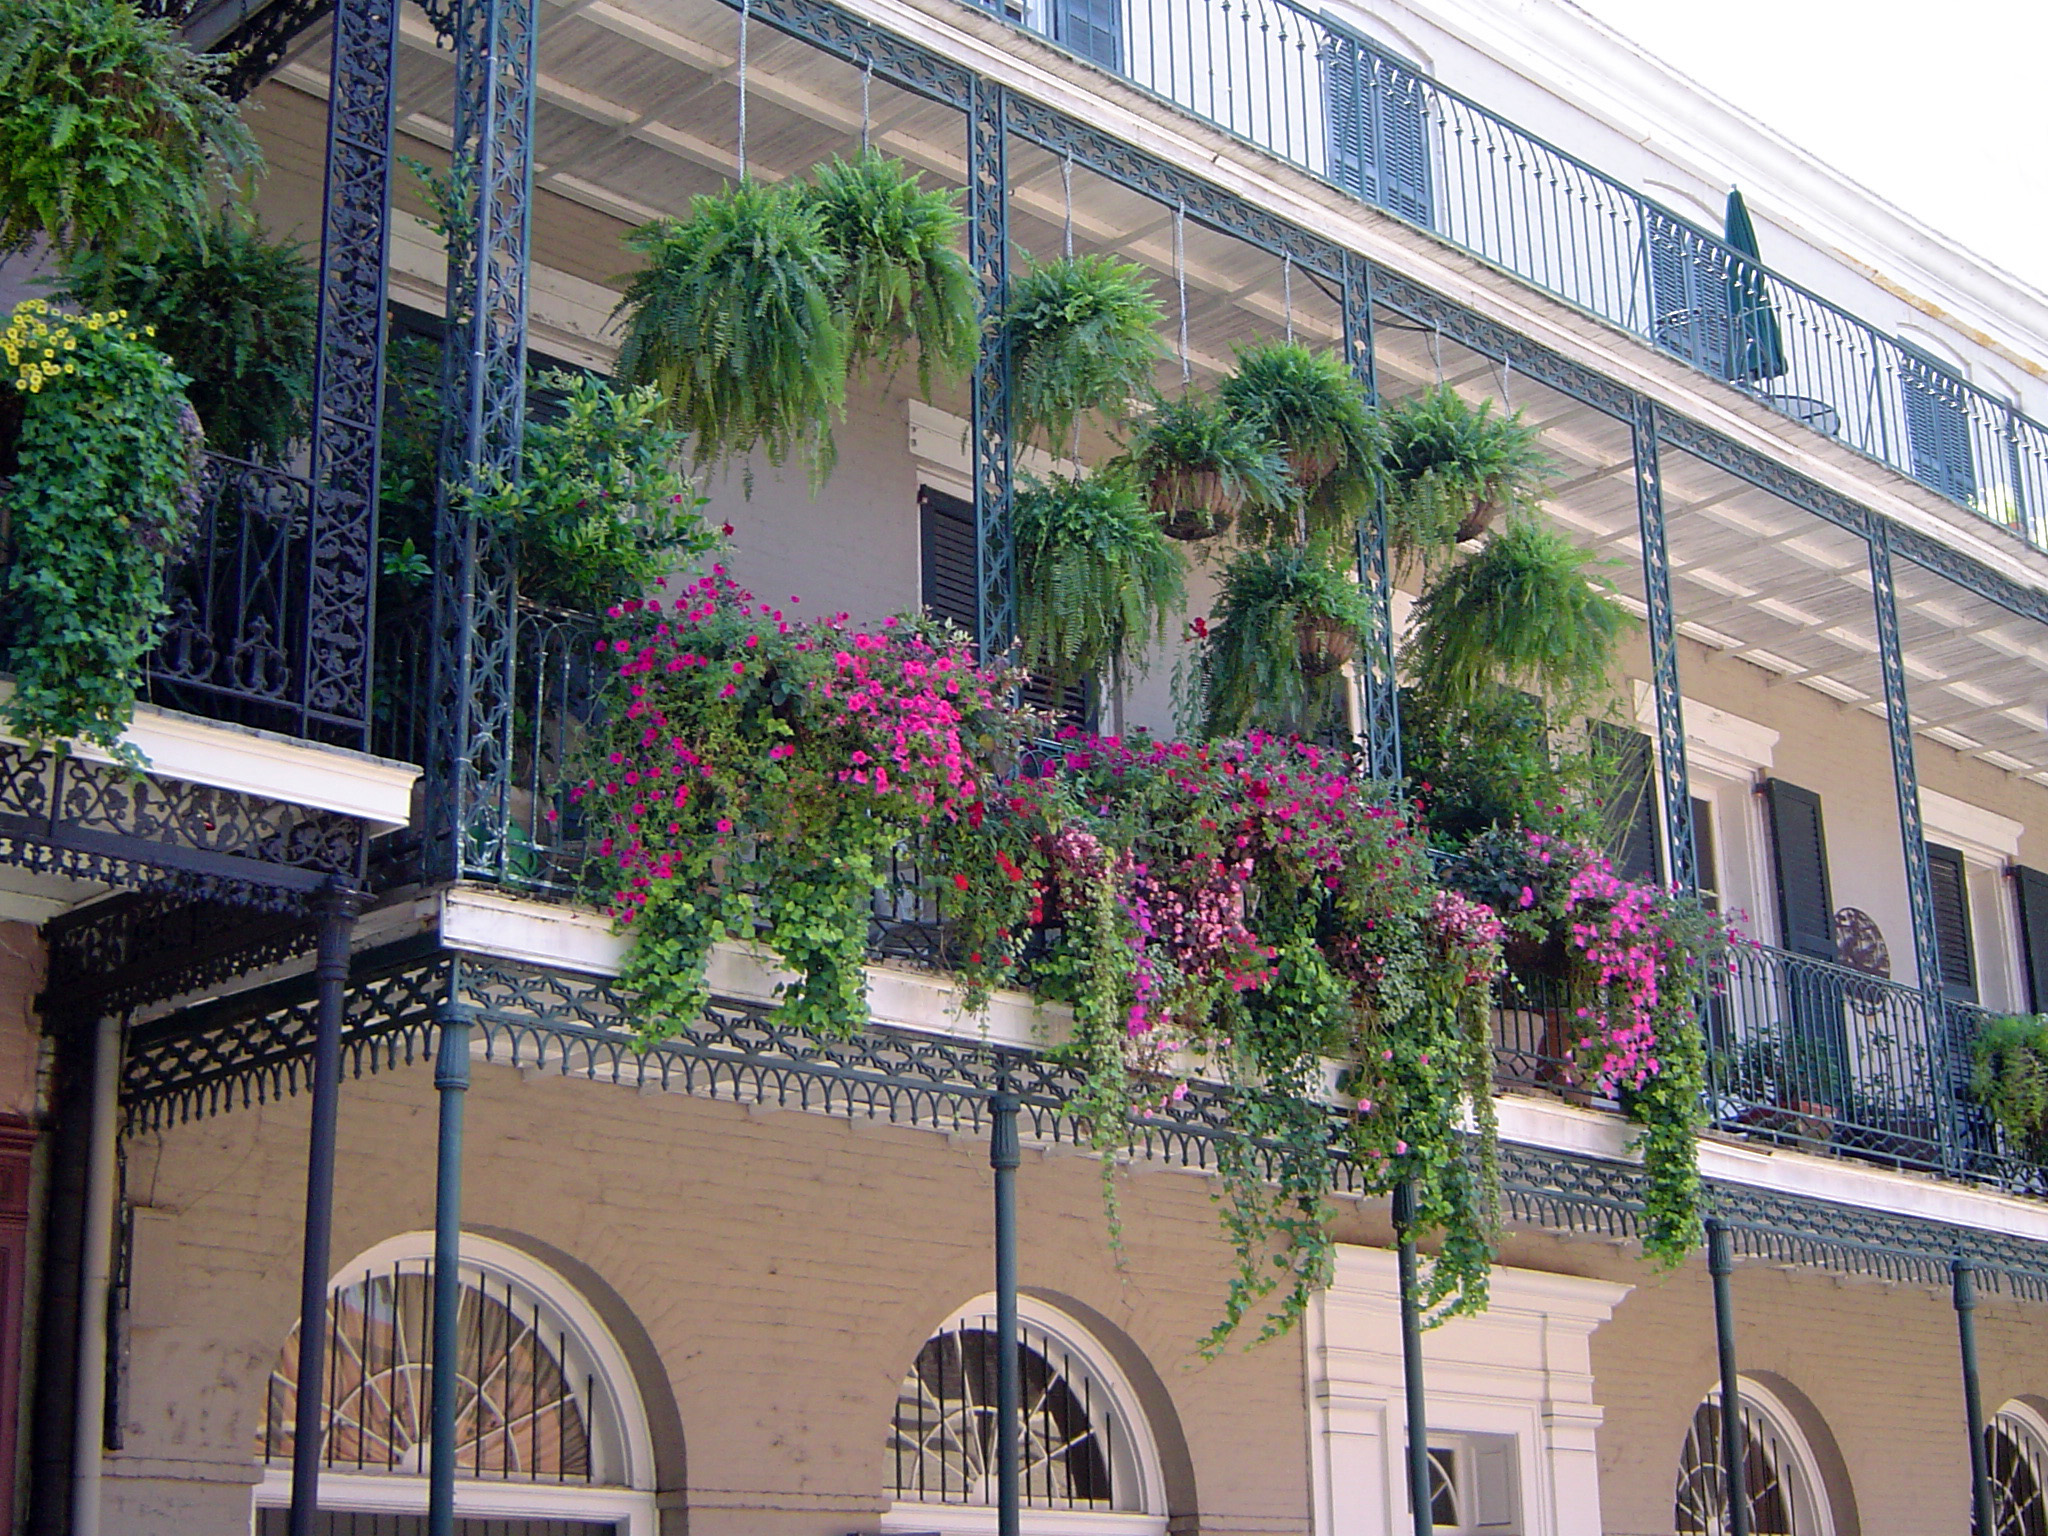 Architectural Building with Outdoor Floral Decorations at New Orleans